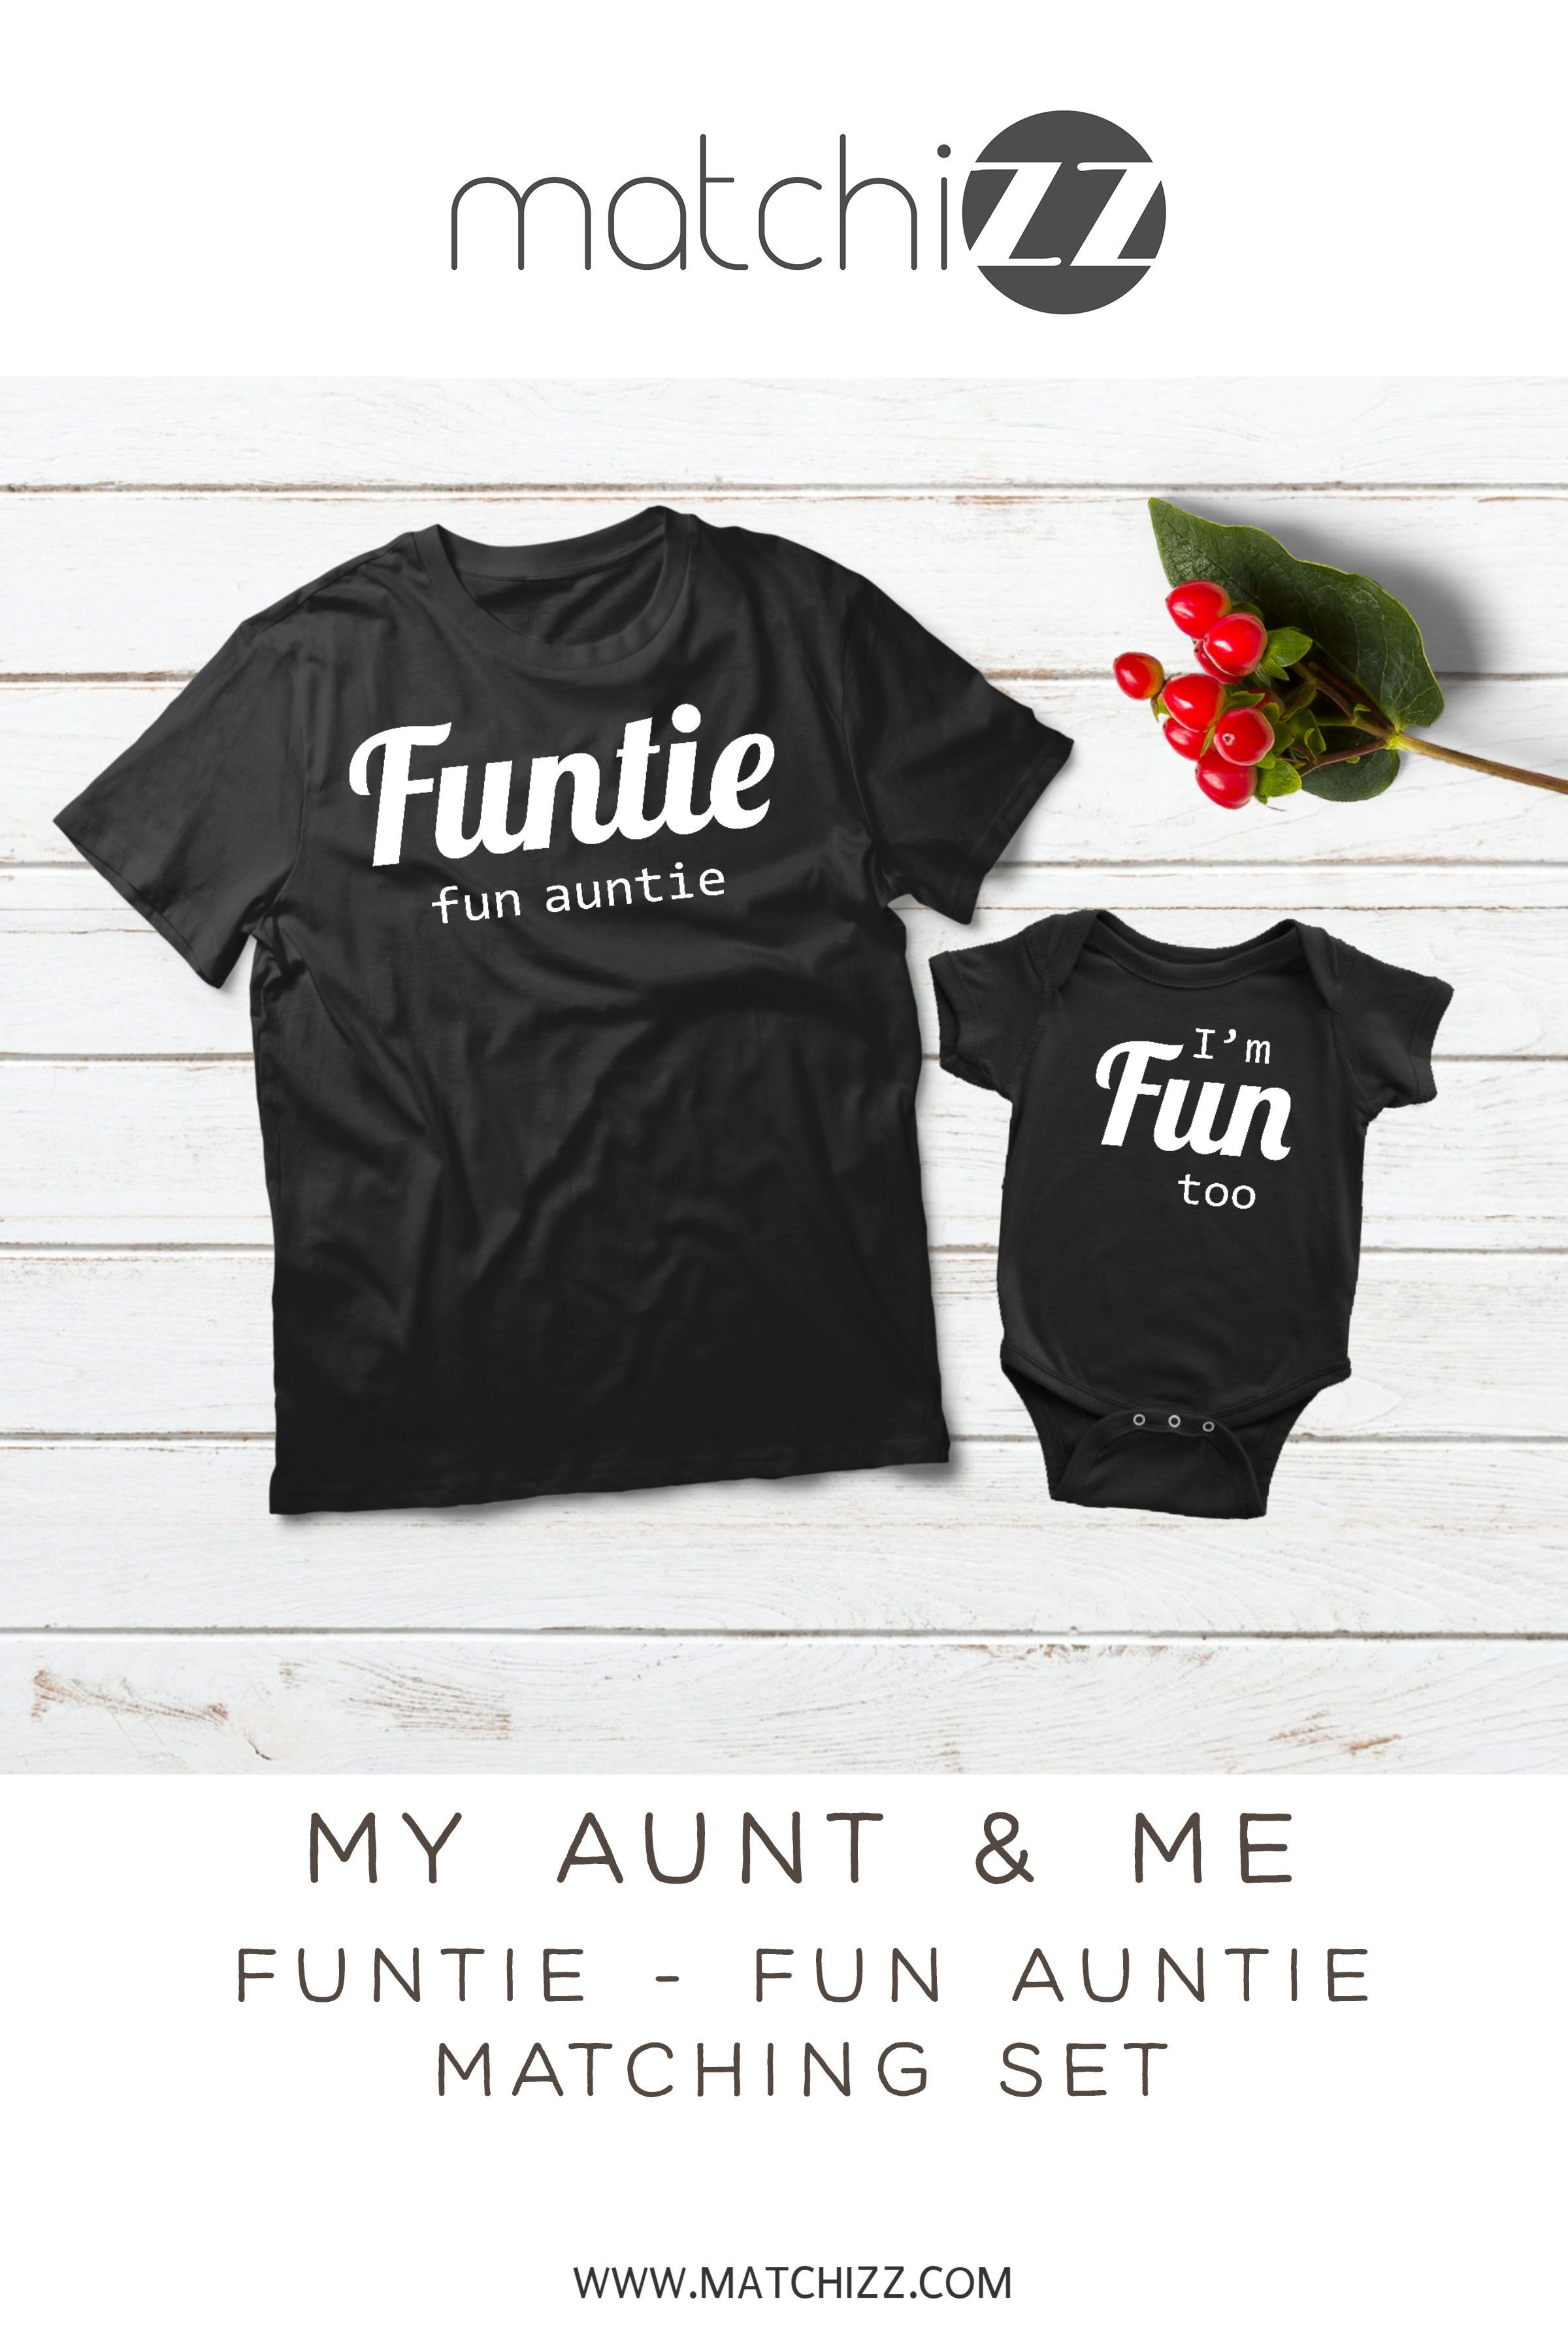 a75e37c5ab Funtie Definition Aunt and Niece Nephew Shirts Auntie Gift #auntsshirts  #auntgifts #auntbabyclothes #auntniece #auntquotes #beinganaunt #funtie